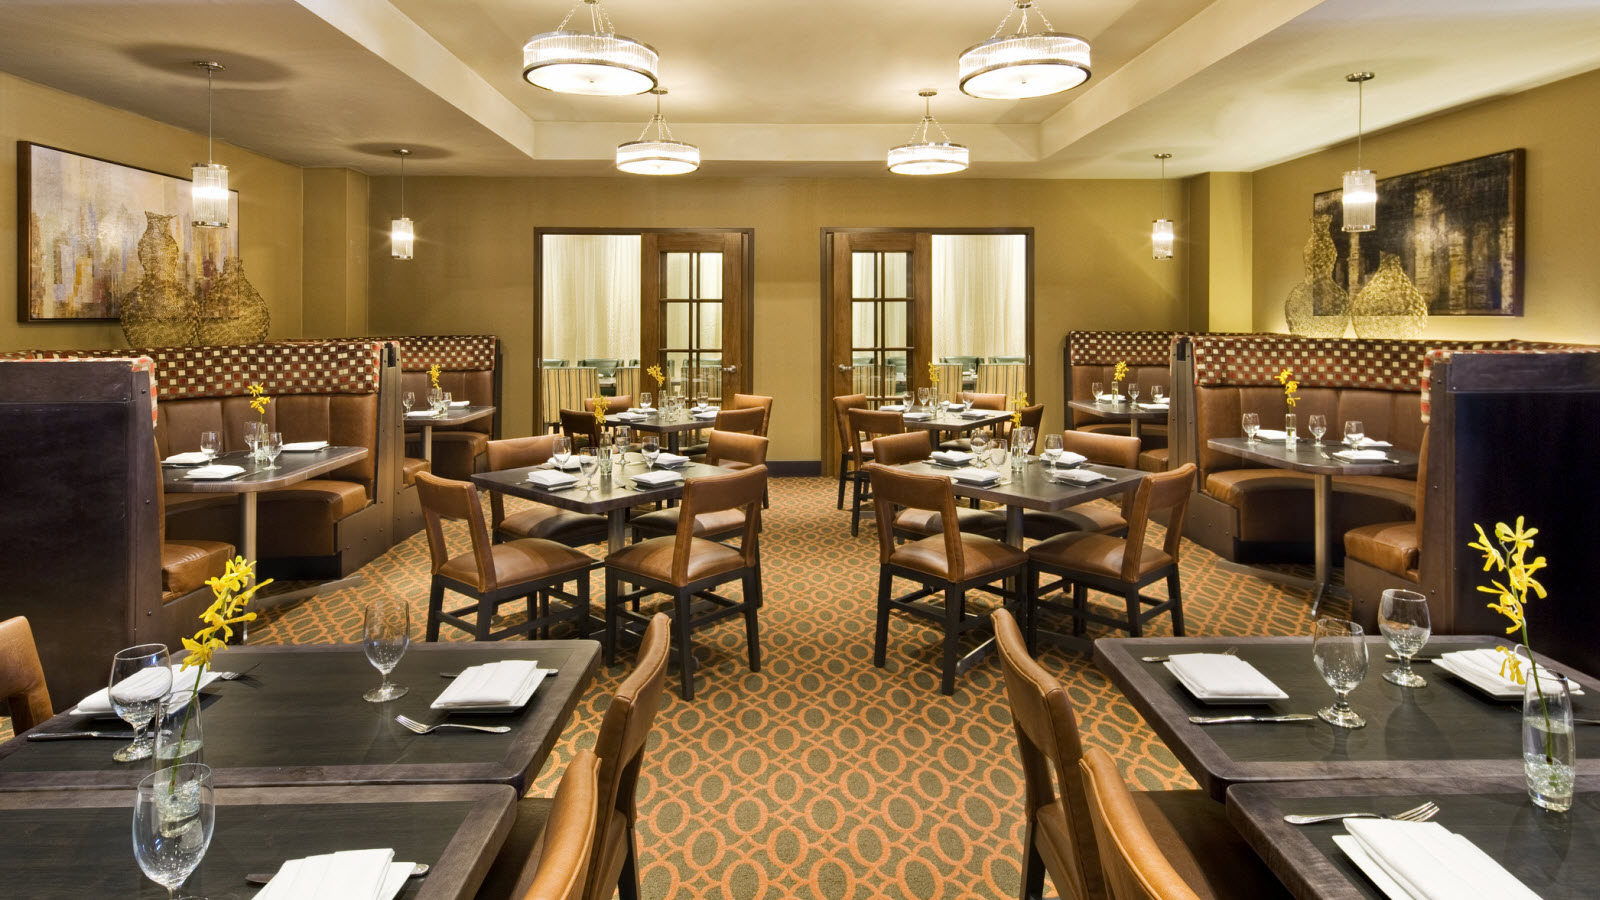 Sheraton Framingham Hotel & Conference Center - Dining Venue